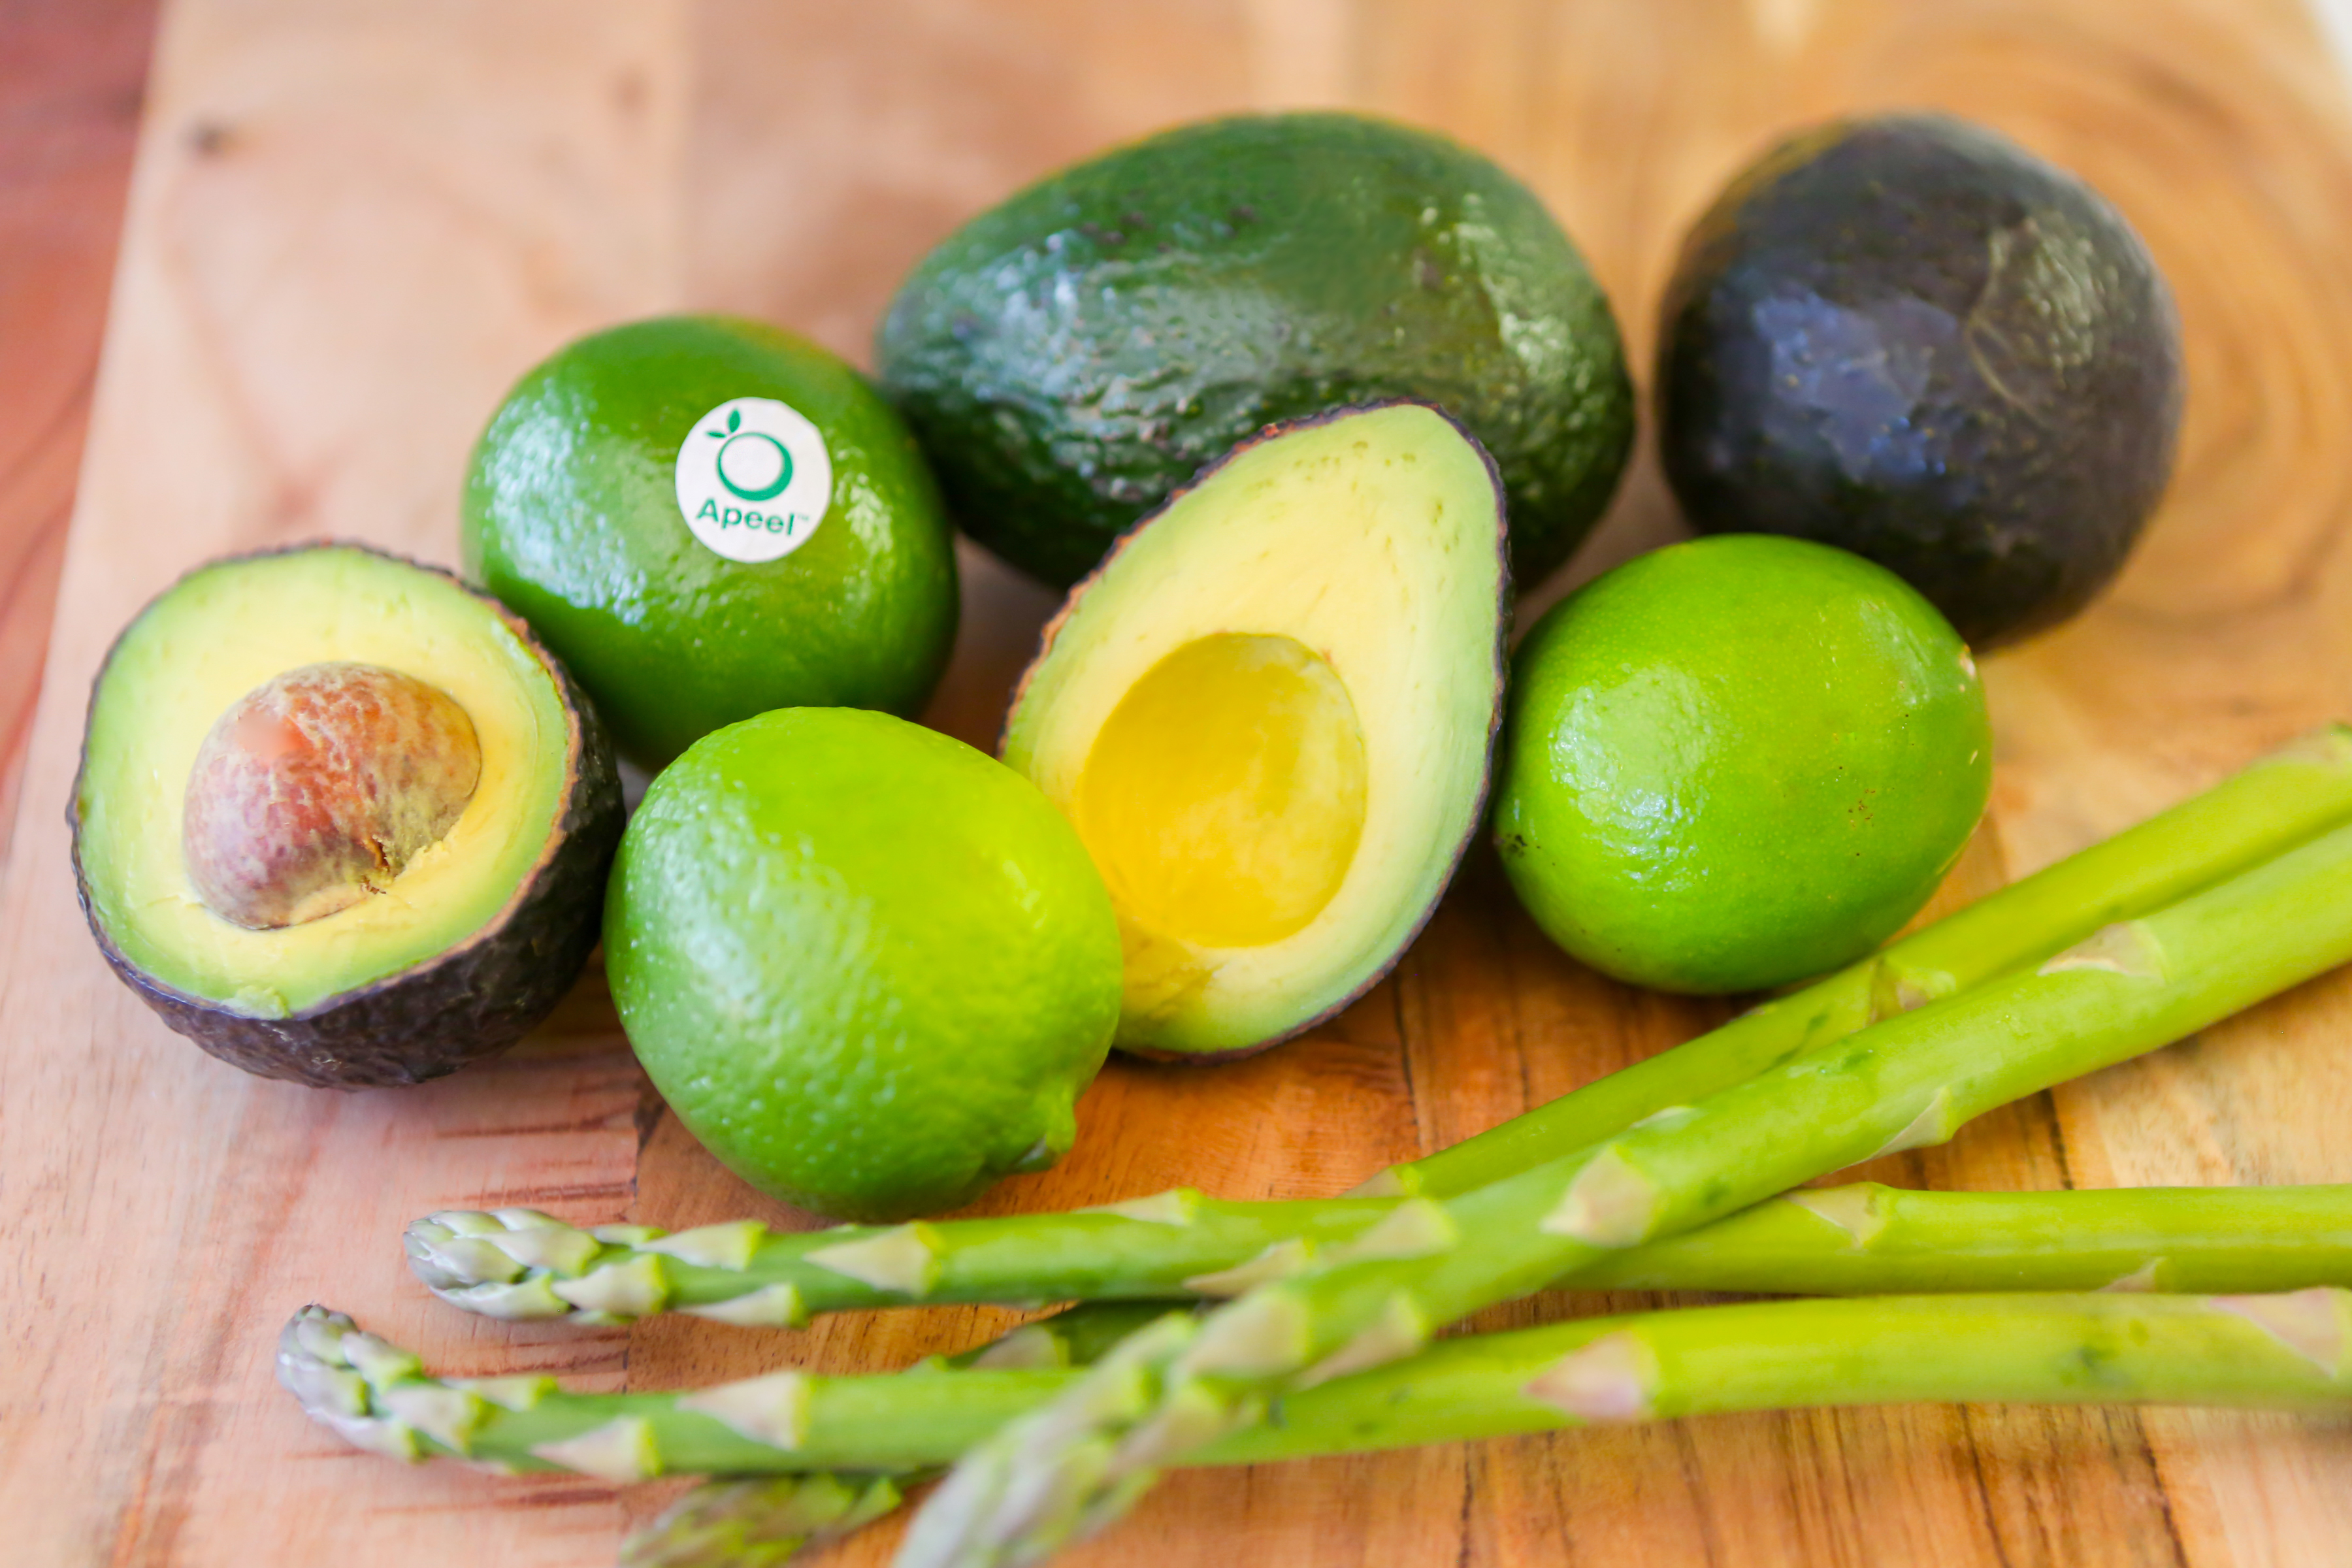 Ever wish those avocados you bought would stay fresh and bright longer? Apeel Sciences has made your wish come true, thanks to plant technology that slows the rate of spoilage.